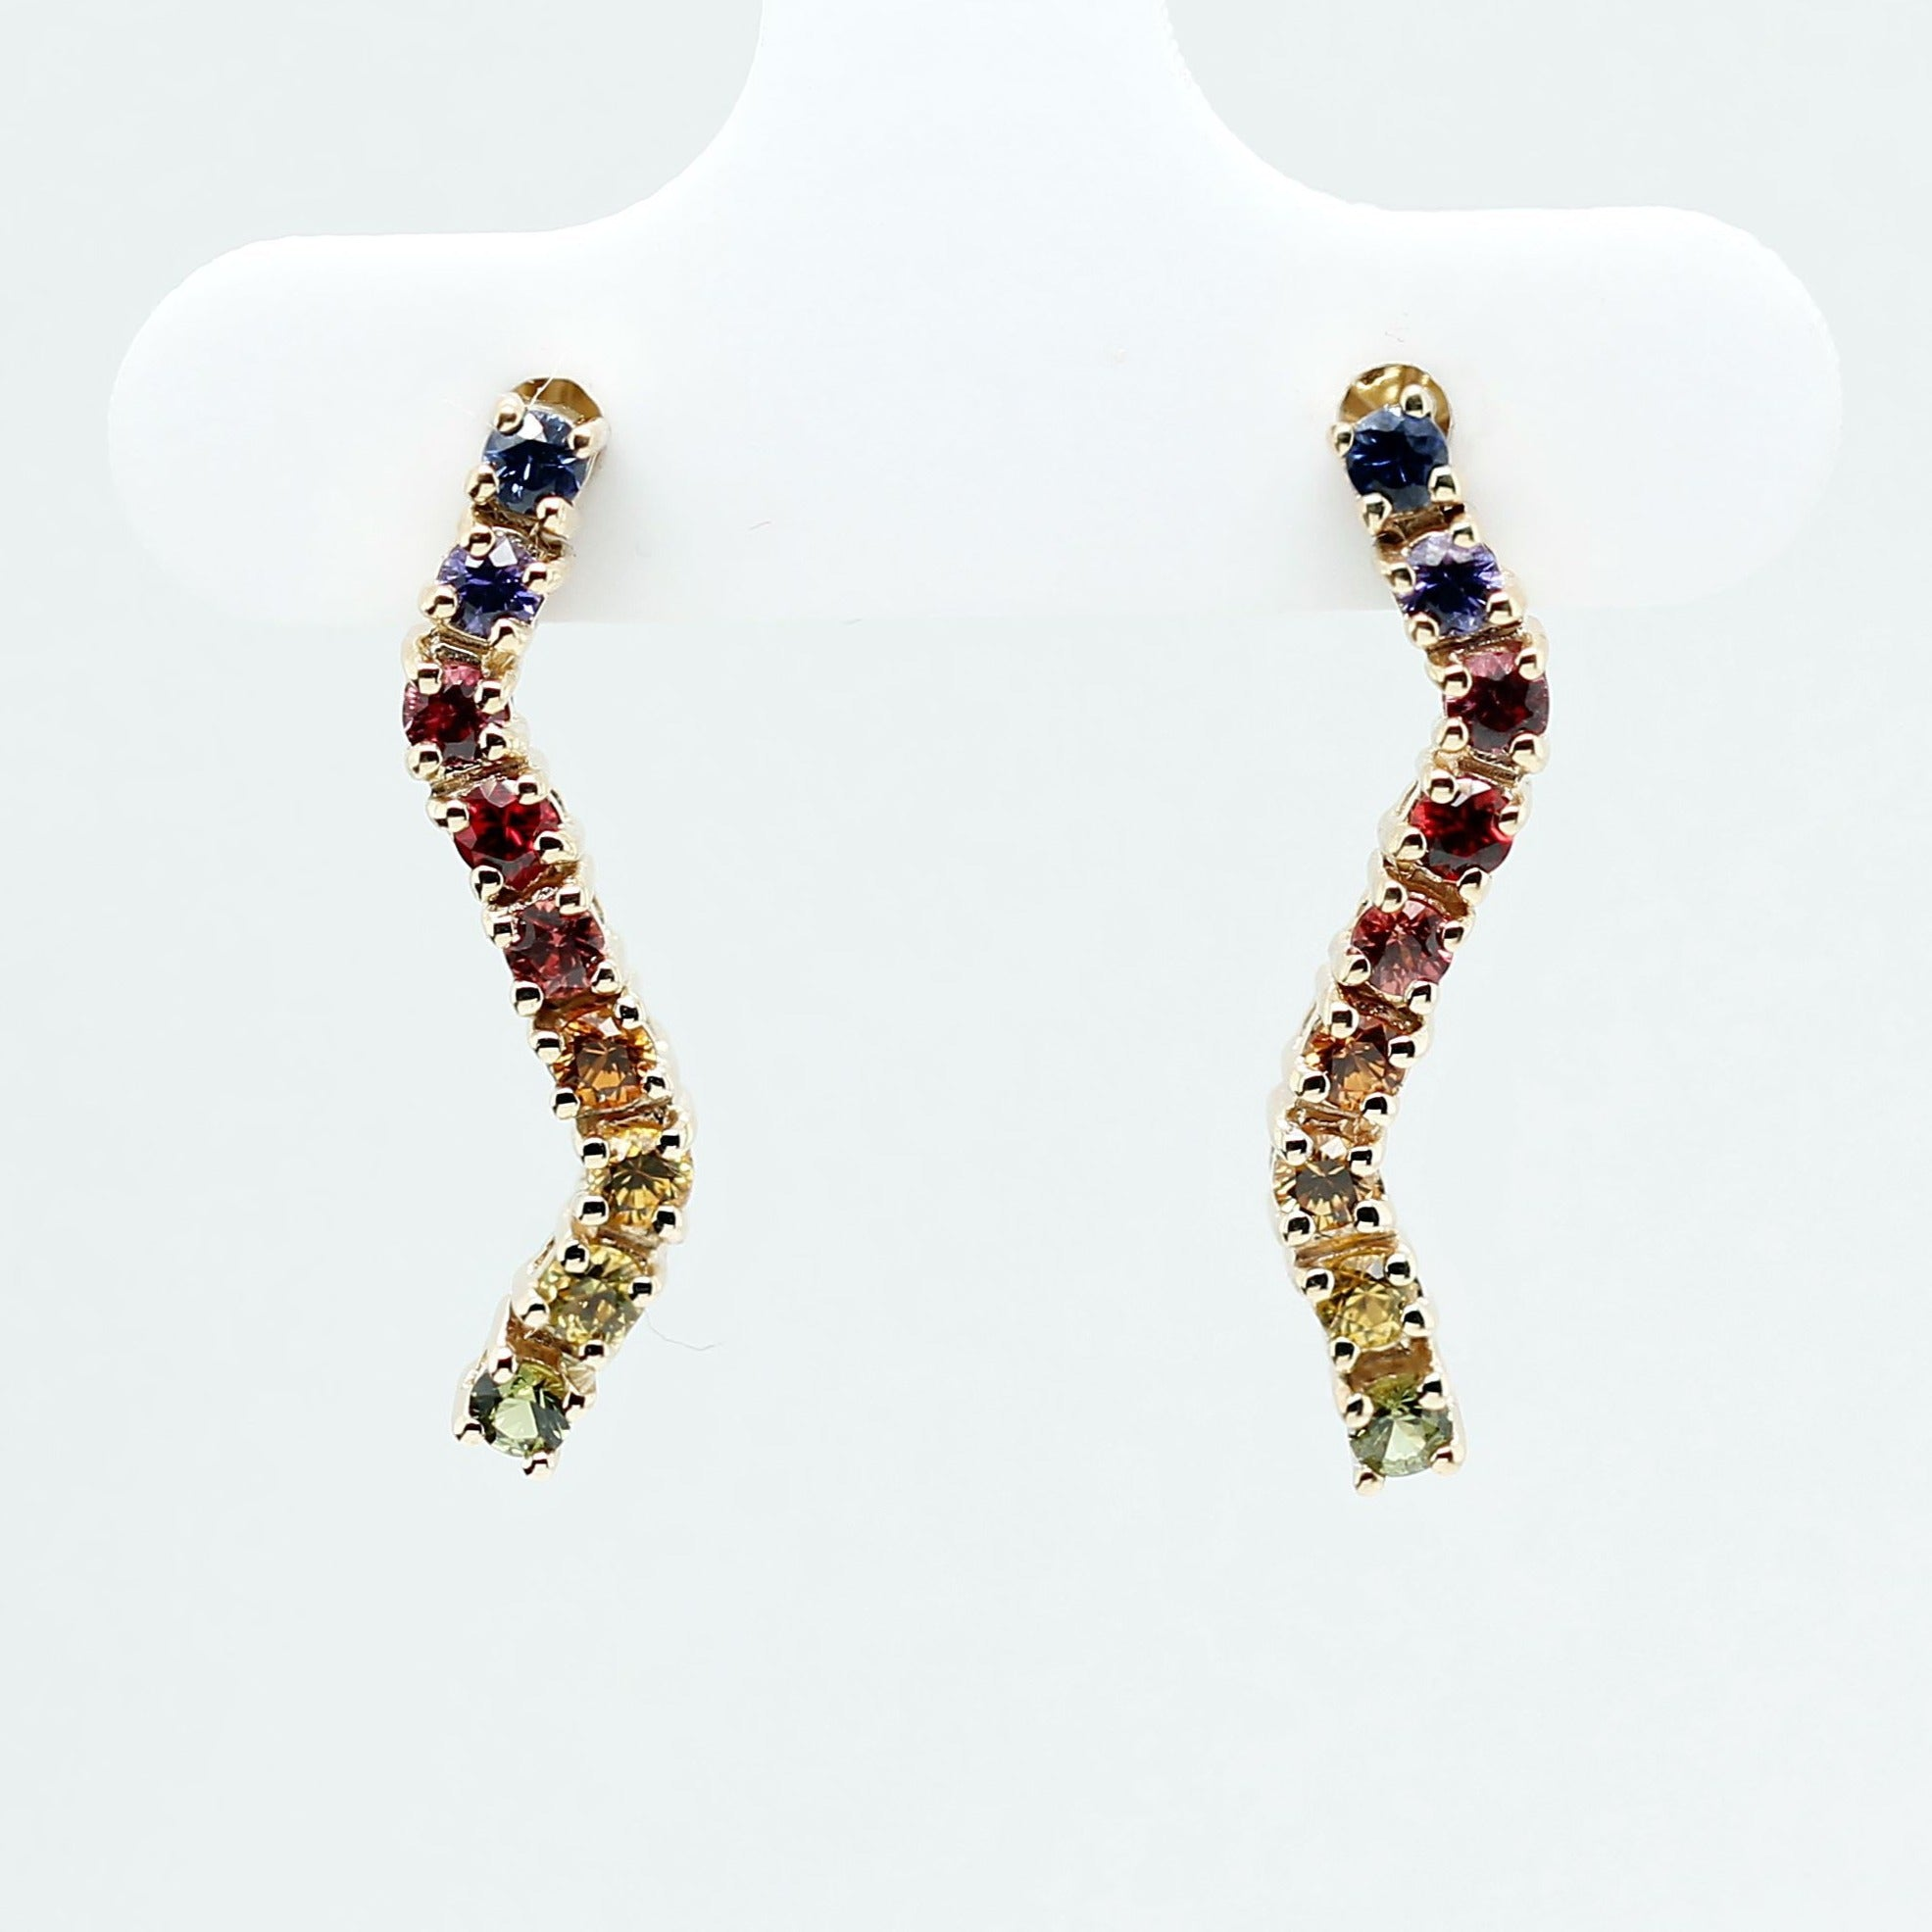 Short wave rainbow earrings with natural round brilliant cut sapphires and rubies